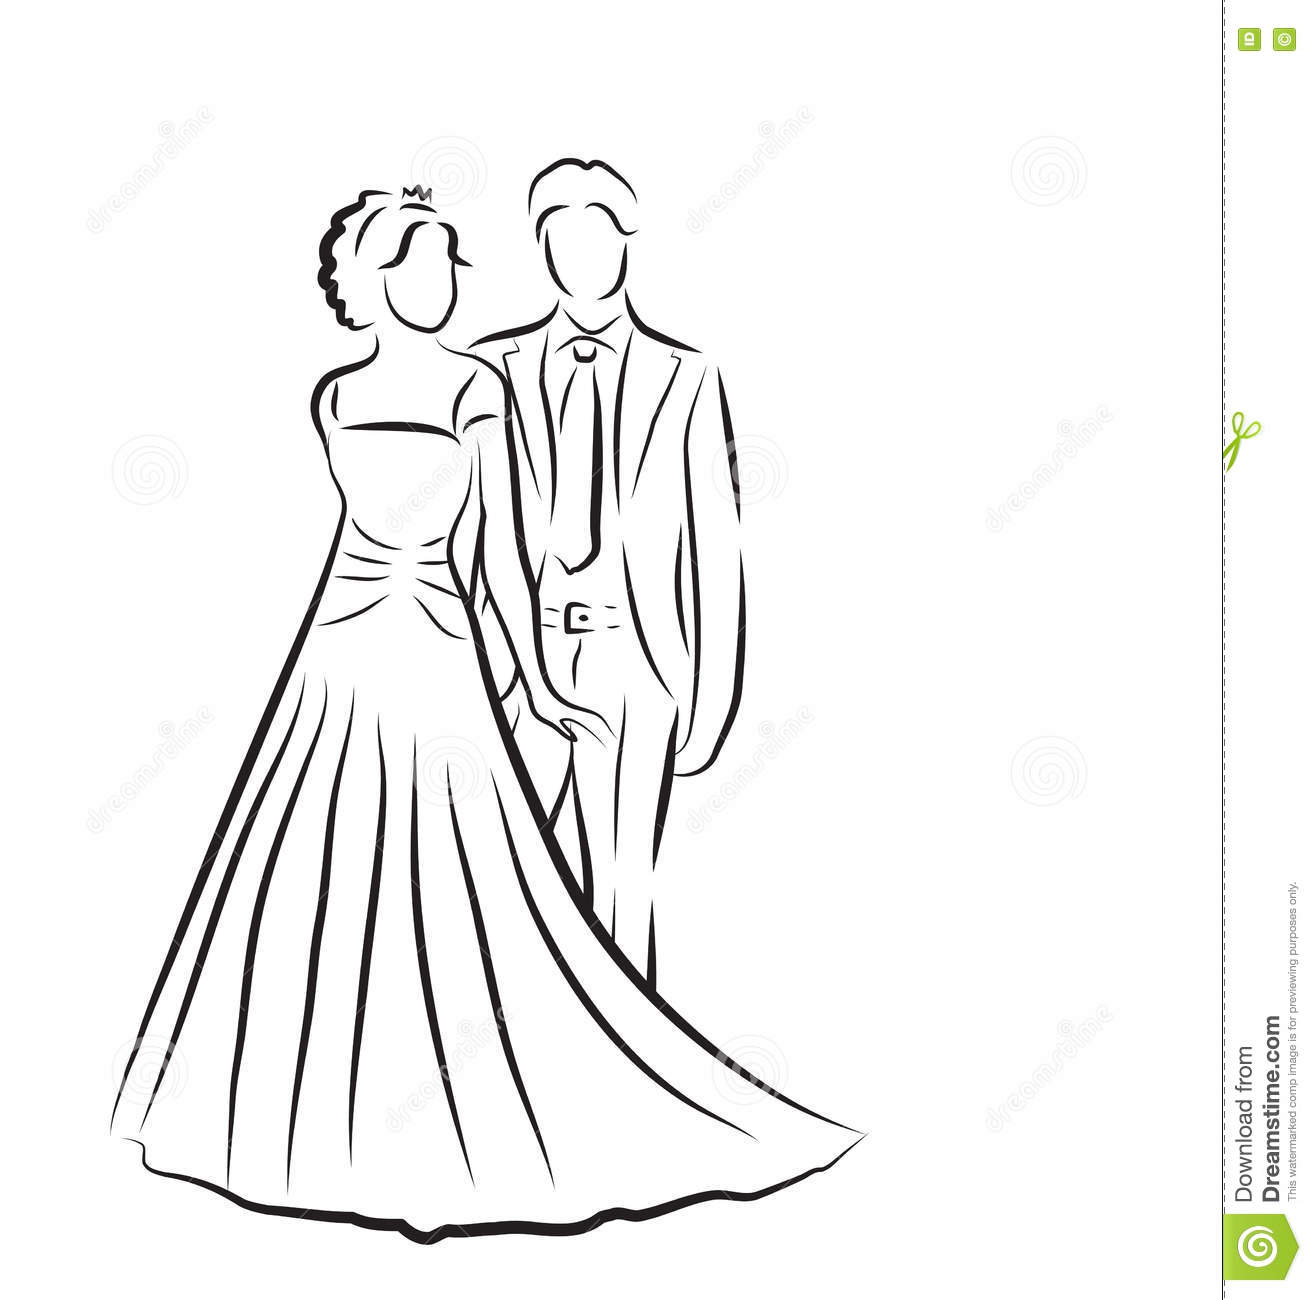 Silhouette Of Bride And Groom, Newlyweds Sketch, Hand Drawing ...